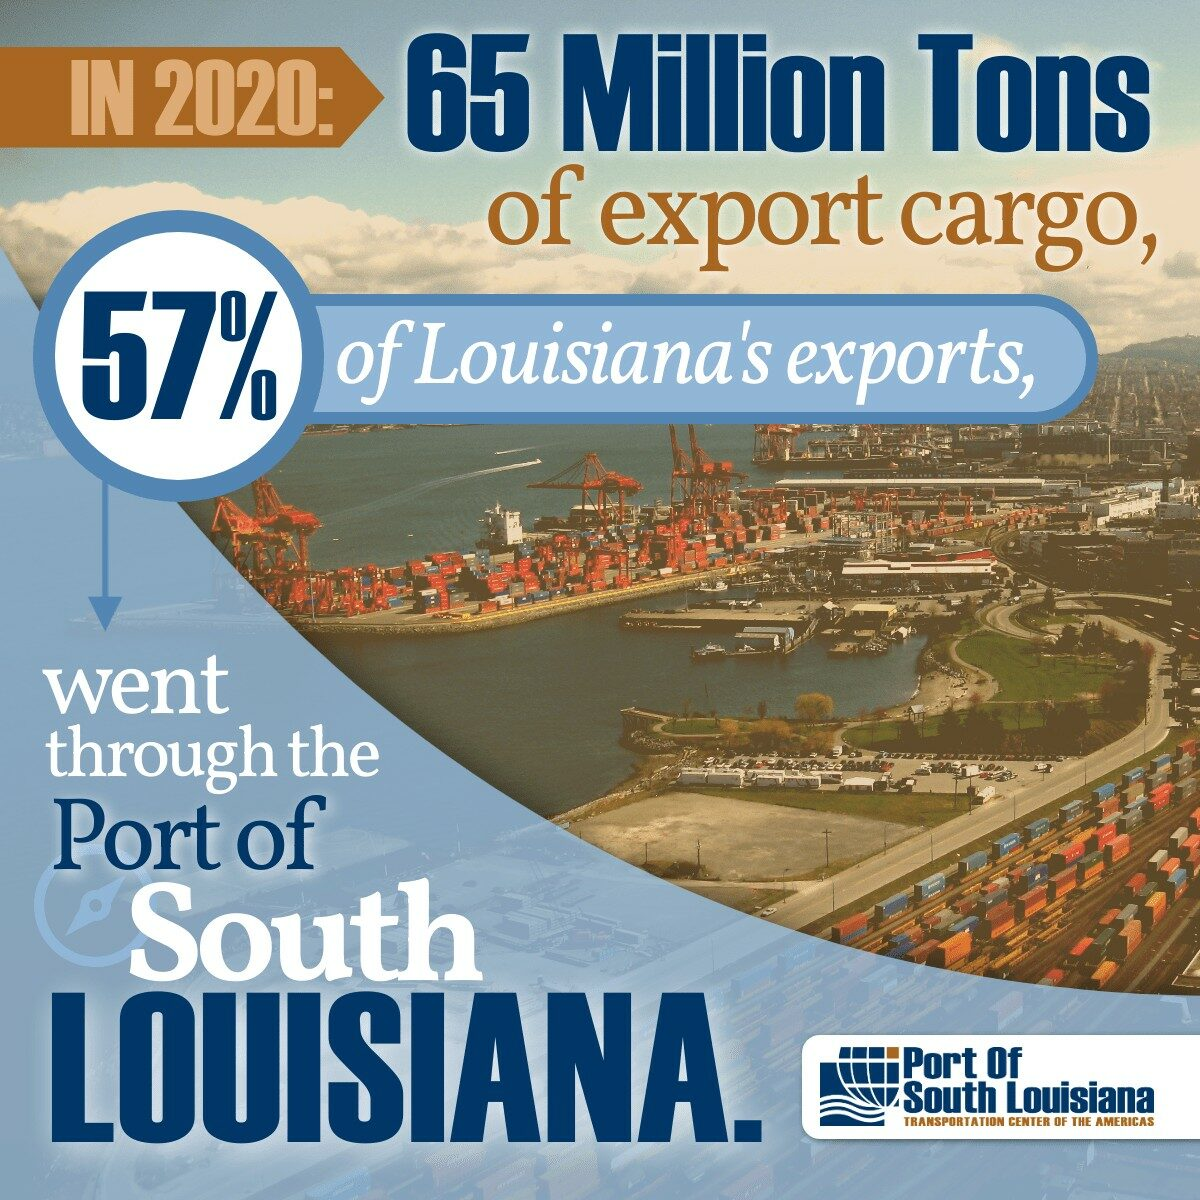 The cover of a recent Port of South Louisiana publication. (Photo: Port of South Louisiana Facebook page)